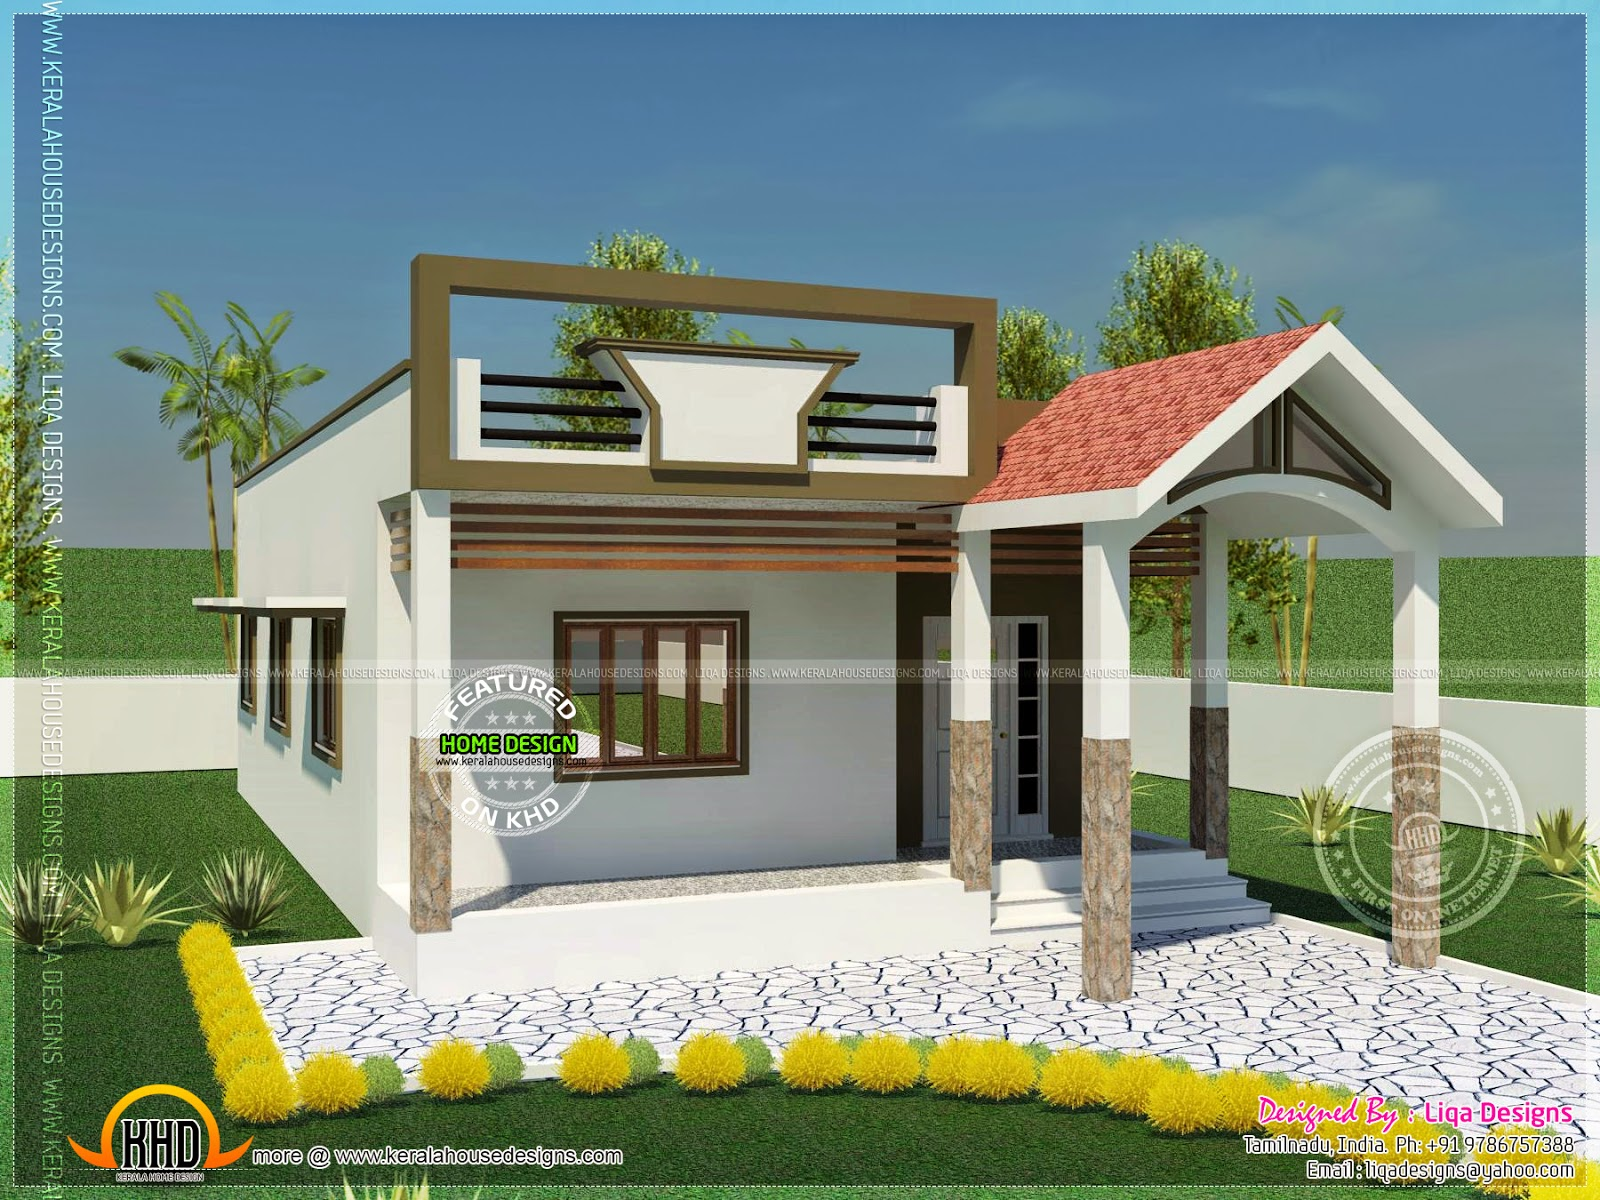 740 square feet single storied house kerala home design for Tamilnadu house models